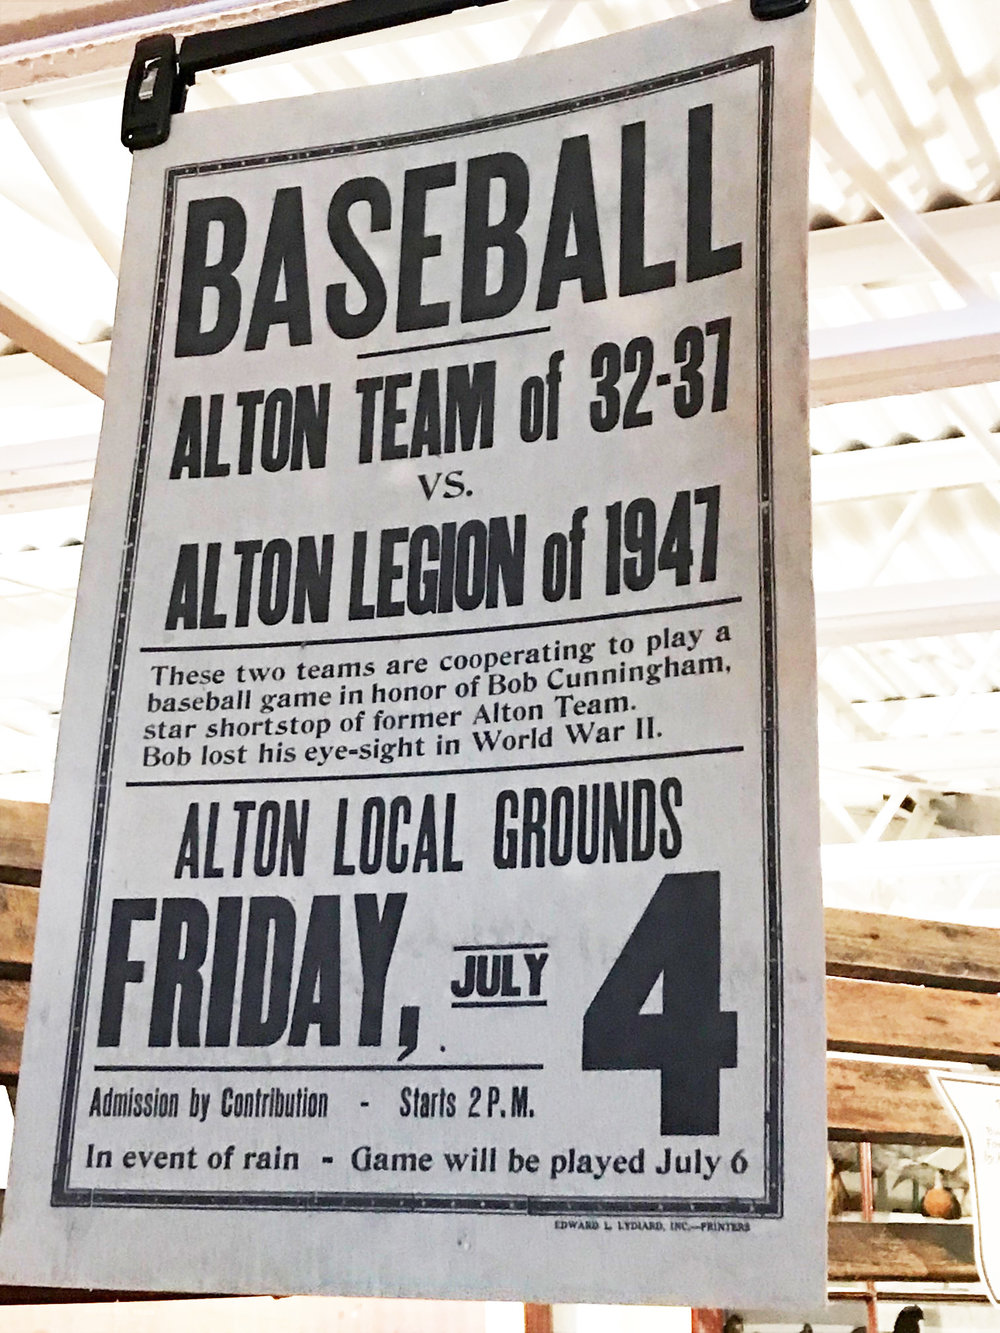 - Town baseball teams were once popular entertainment in small towns, as attested to by this old sign.